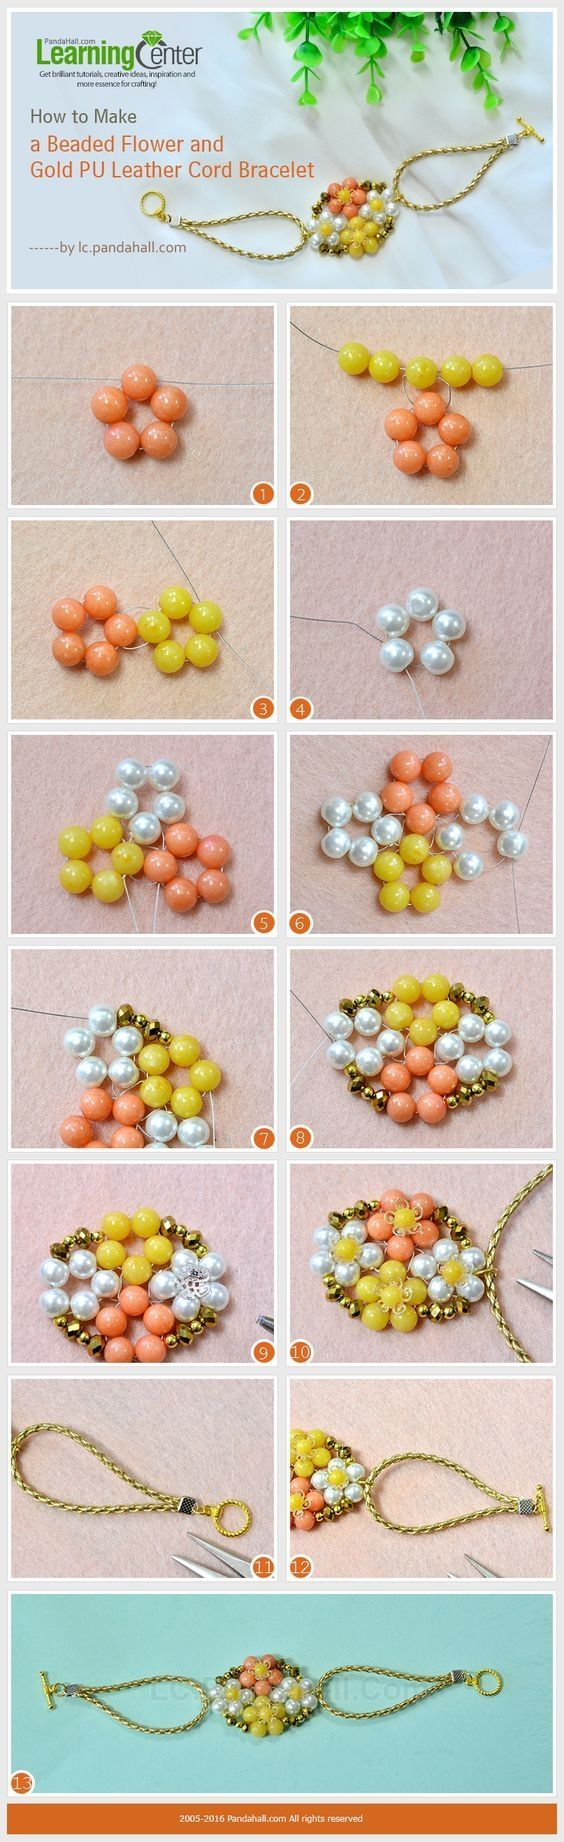 How to Make a Beaded Flower and Gold PU Leather Cord Bracelet from LC.Pandahall.com | Jewelry Making Tutorials & Tips 2 | Pinterest by Jersica